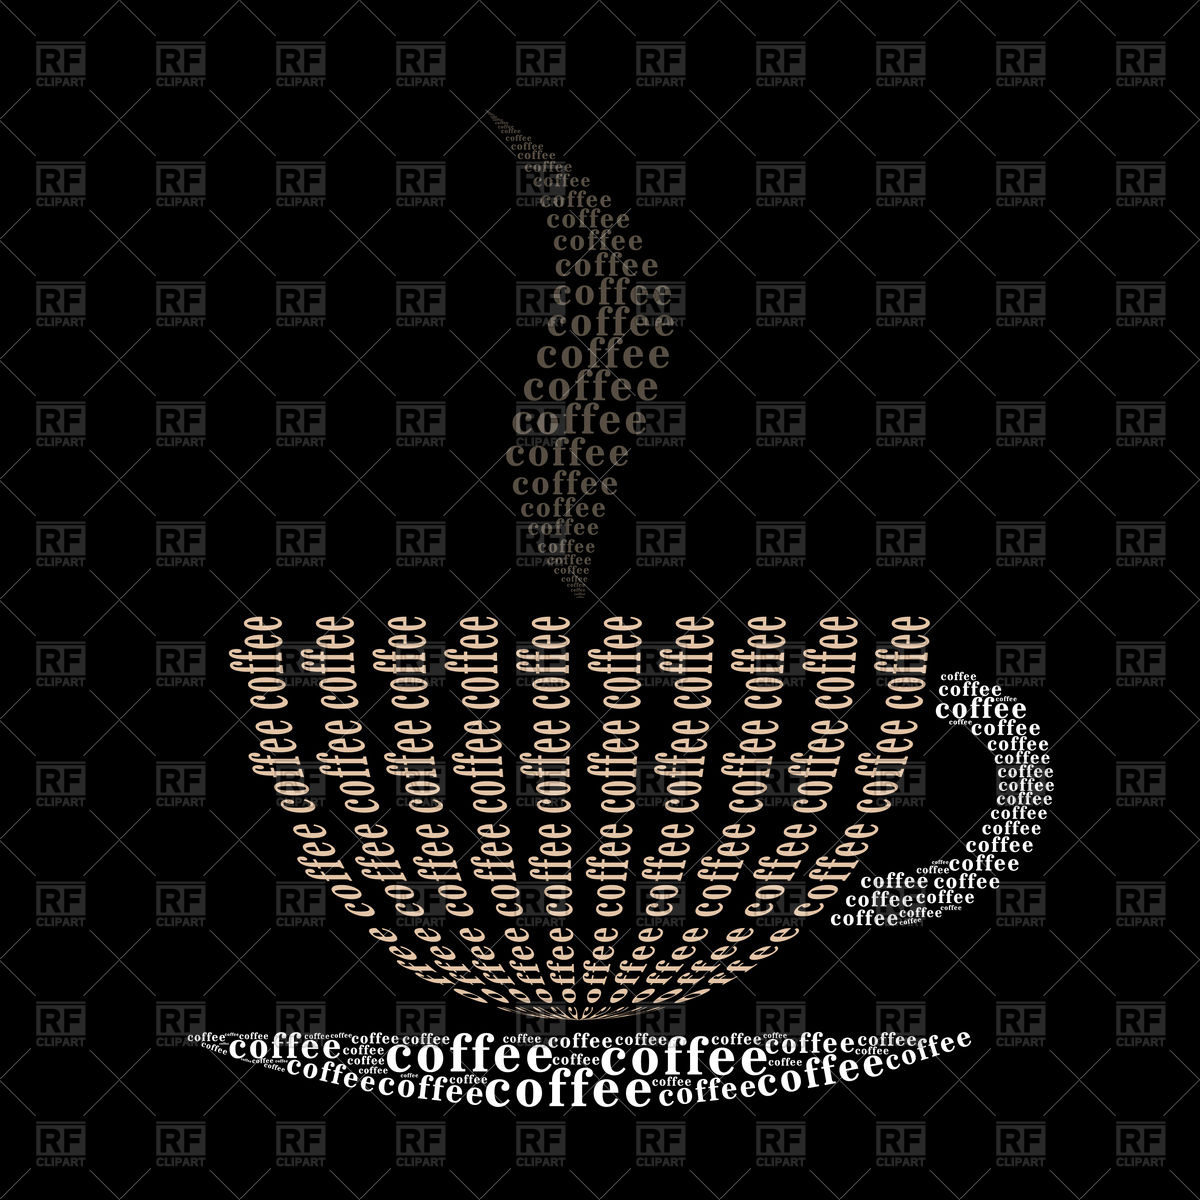 Coffee cup made of words on black background Vector Image of Signs 1200x1200